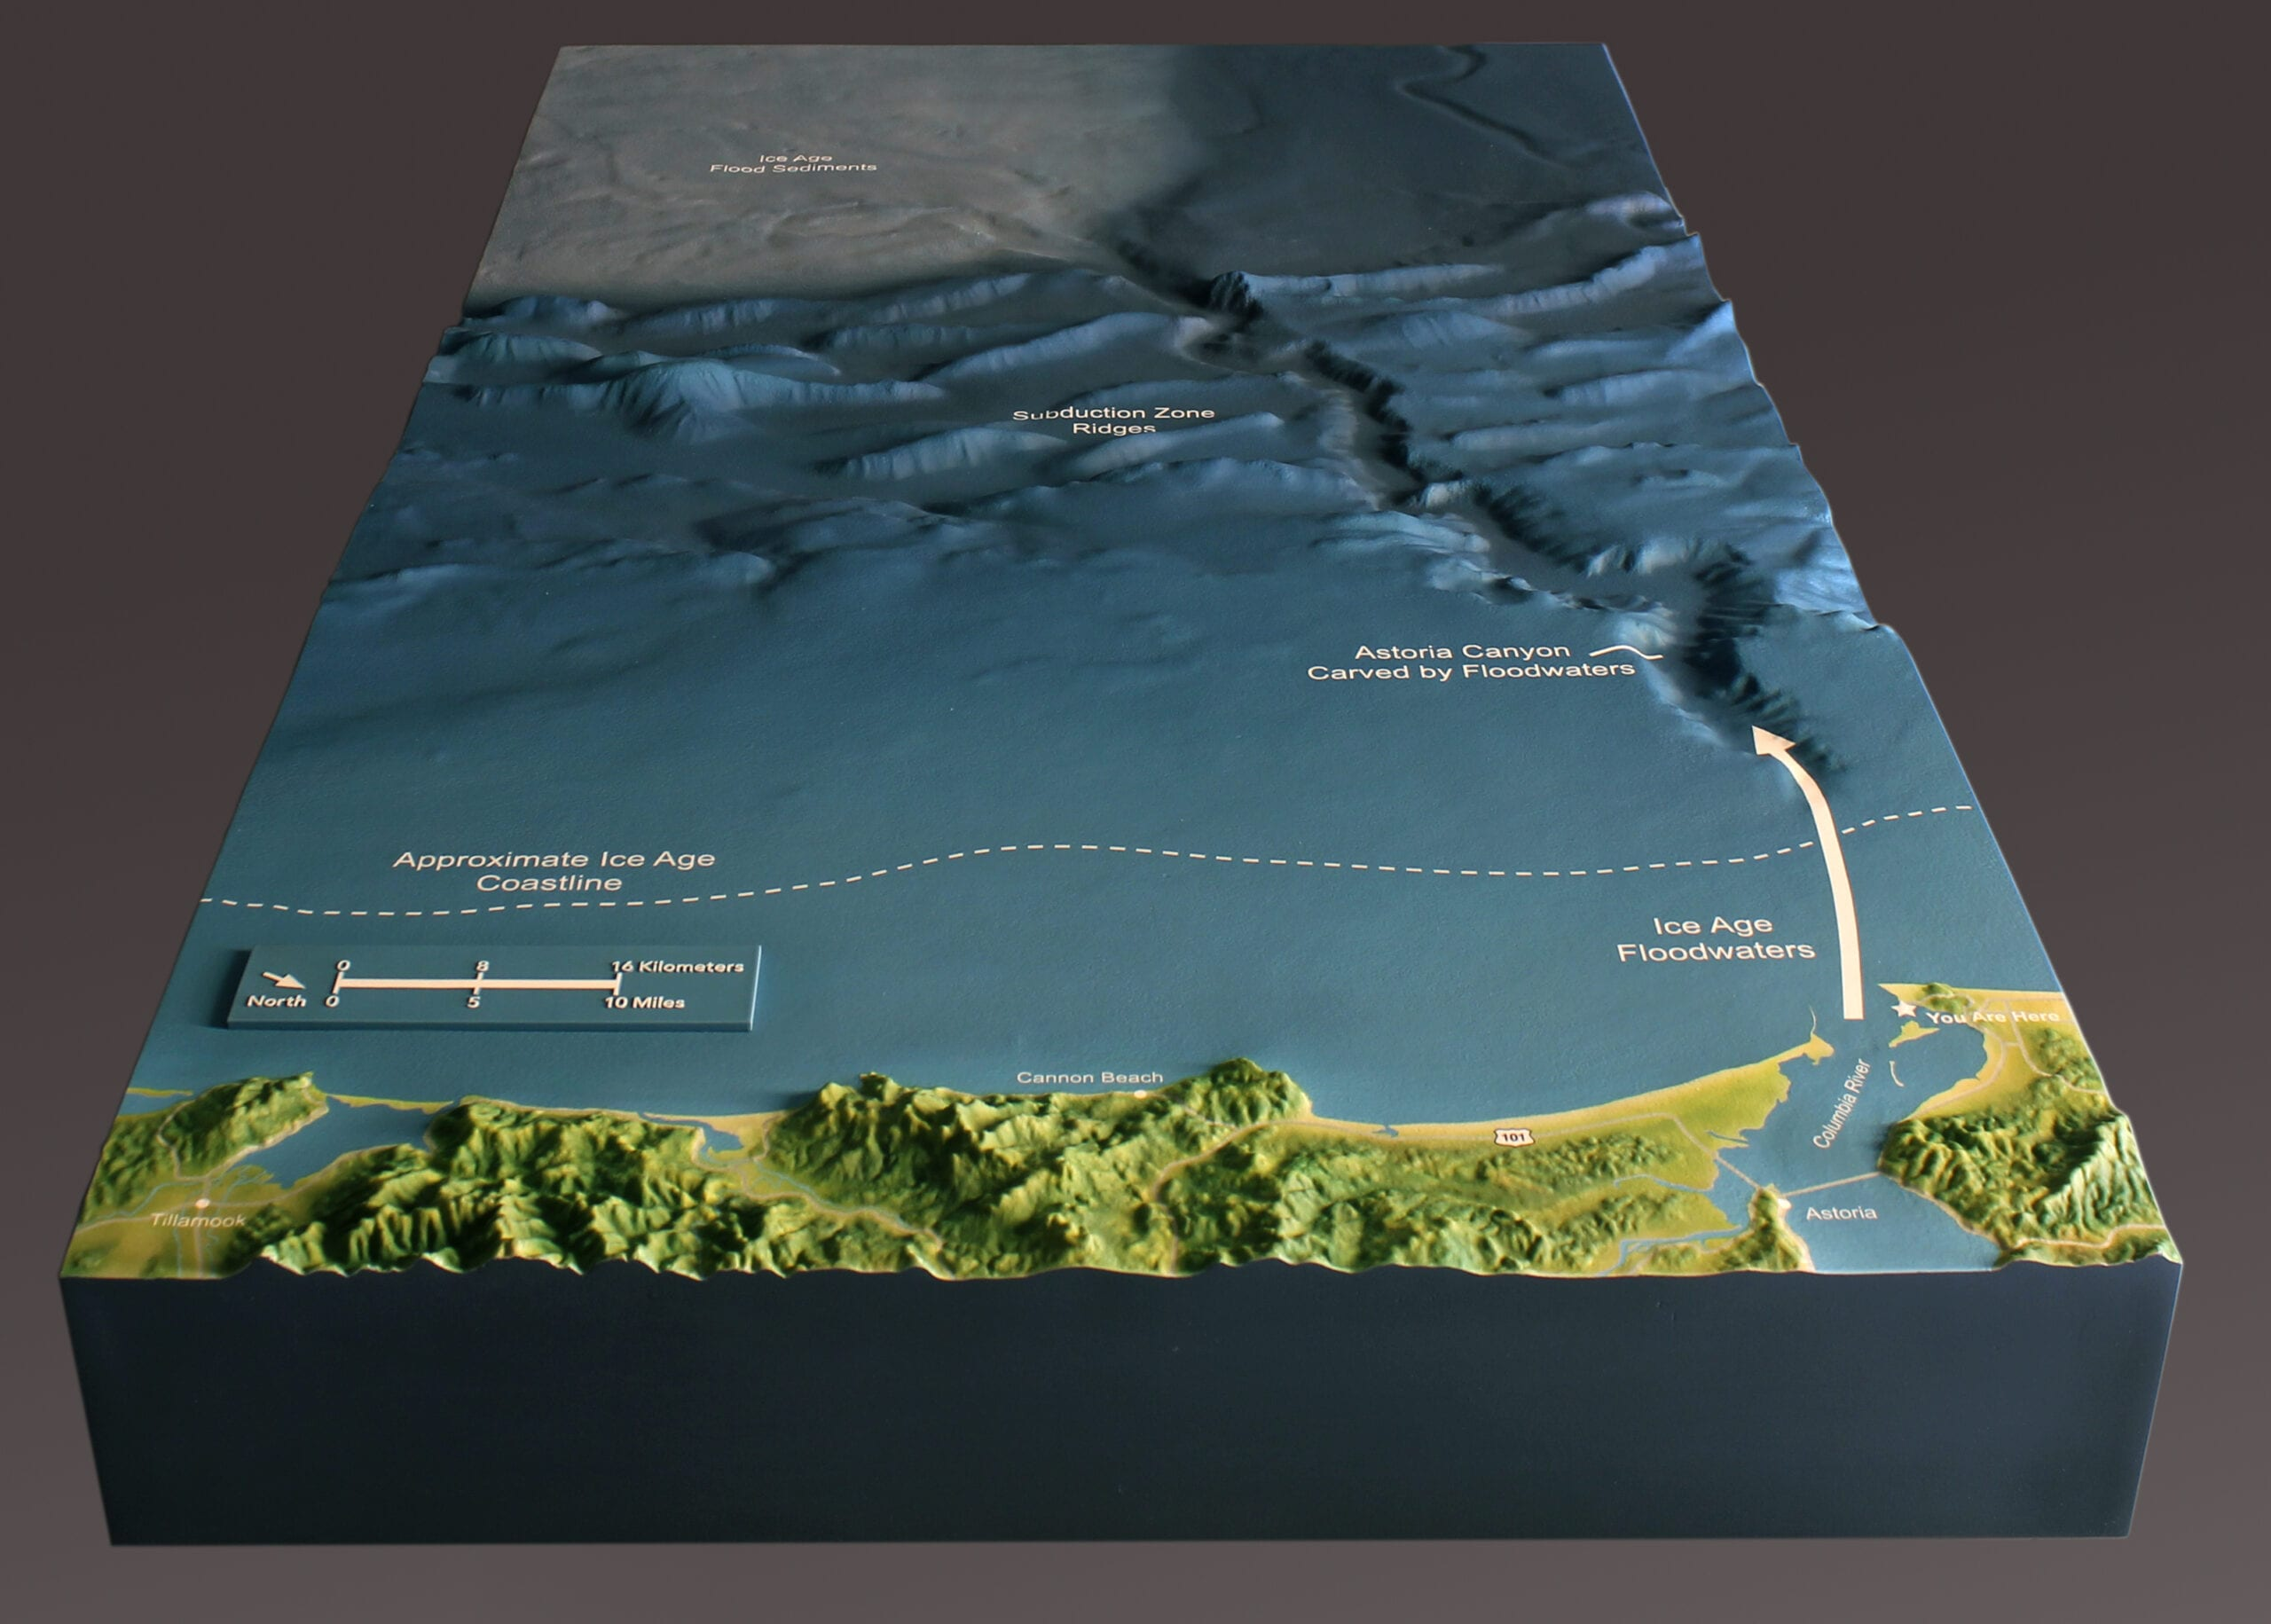 View of Cape Disappointment topographic scale model